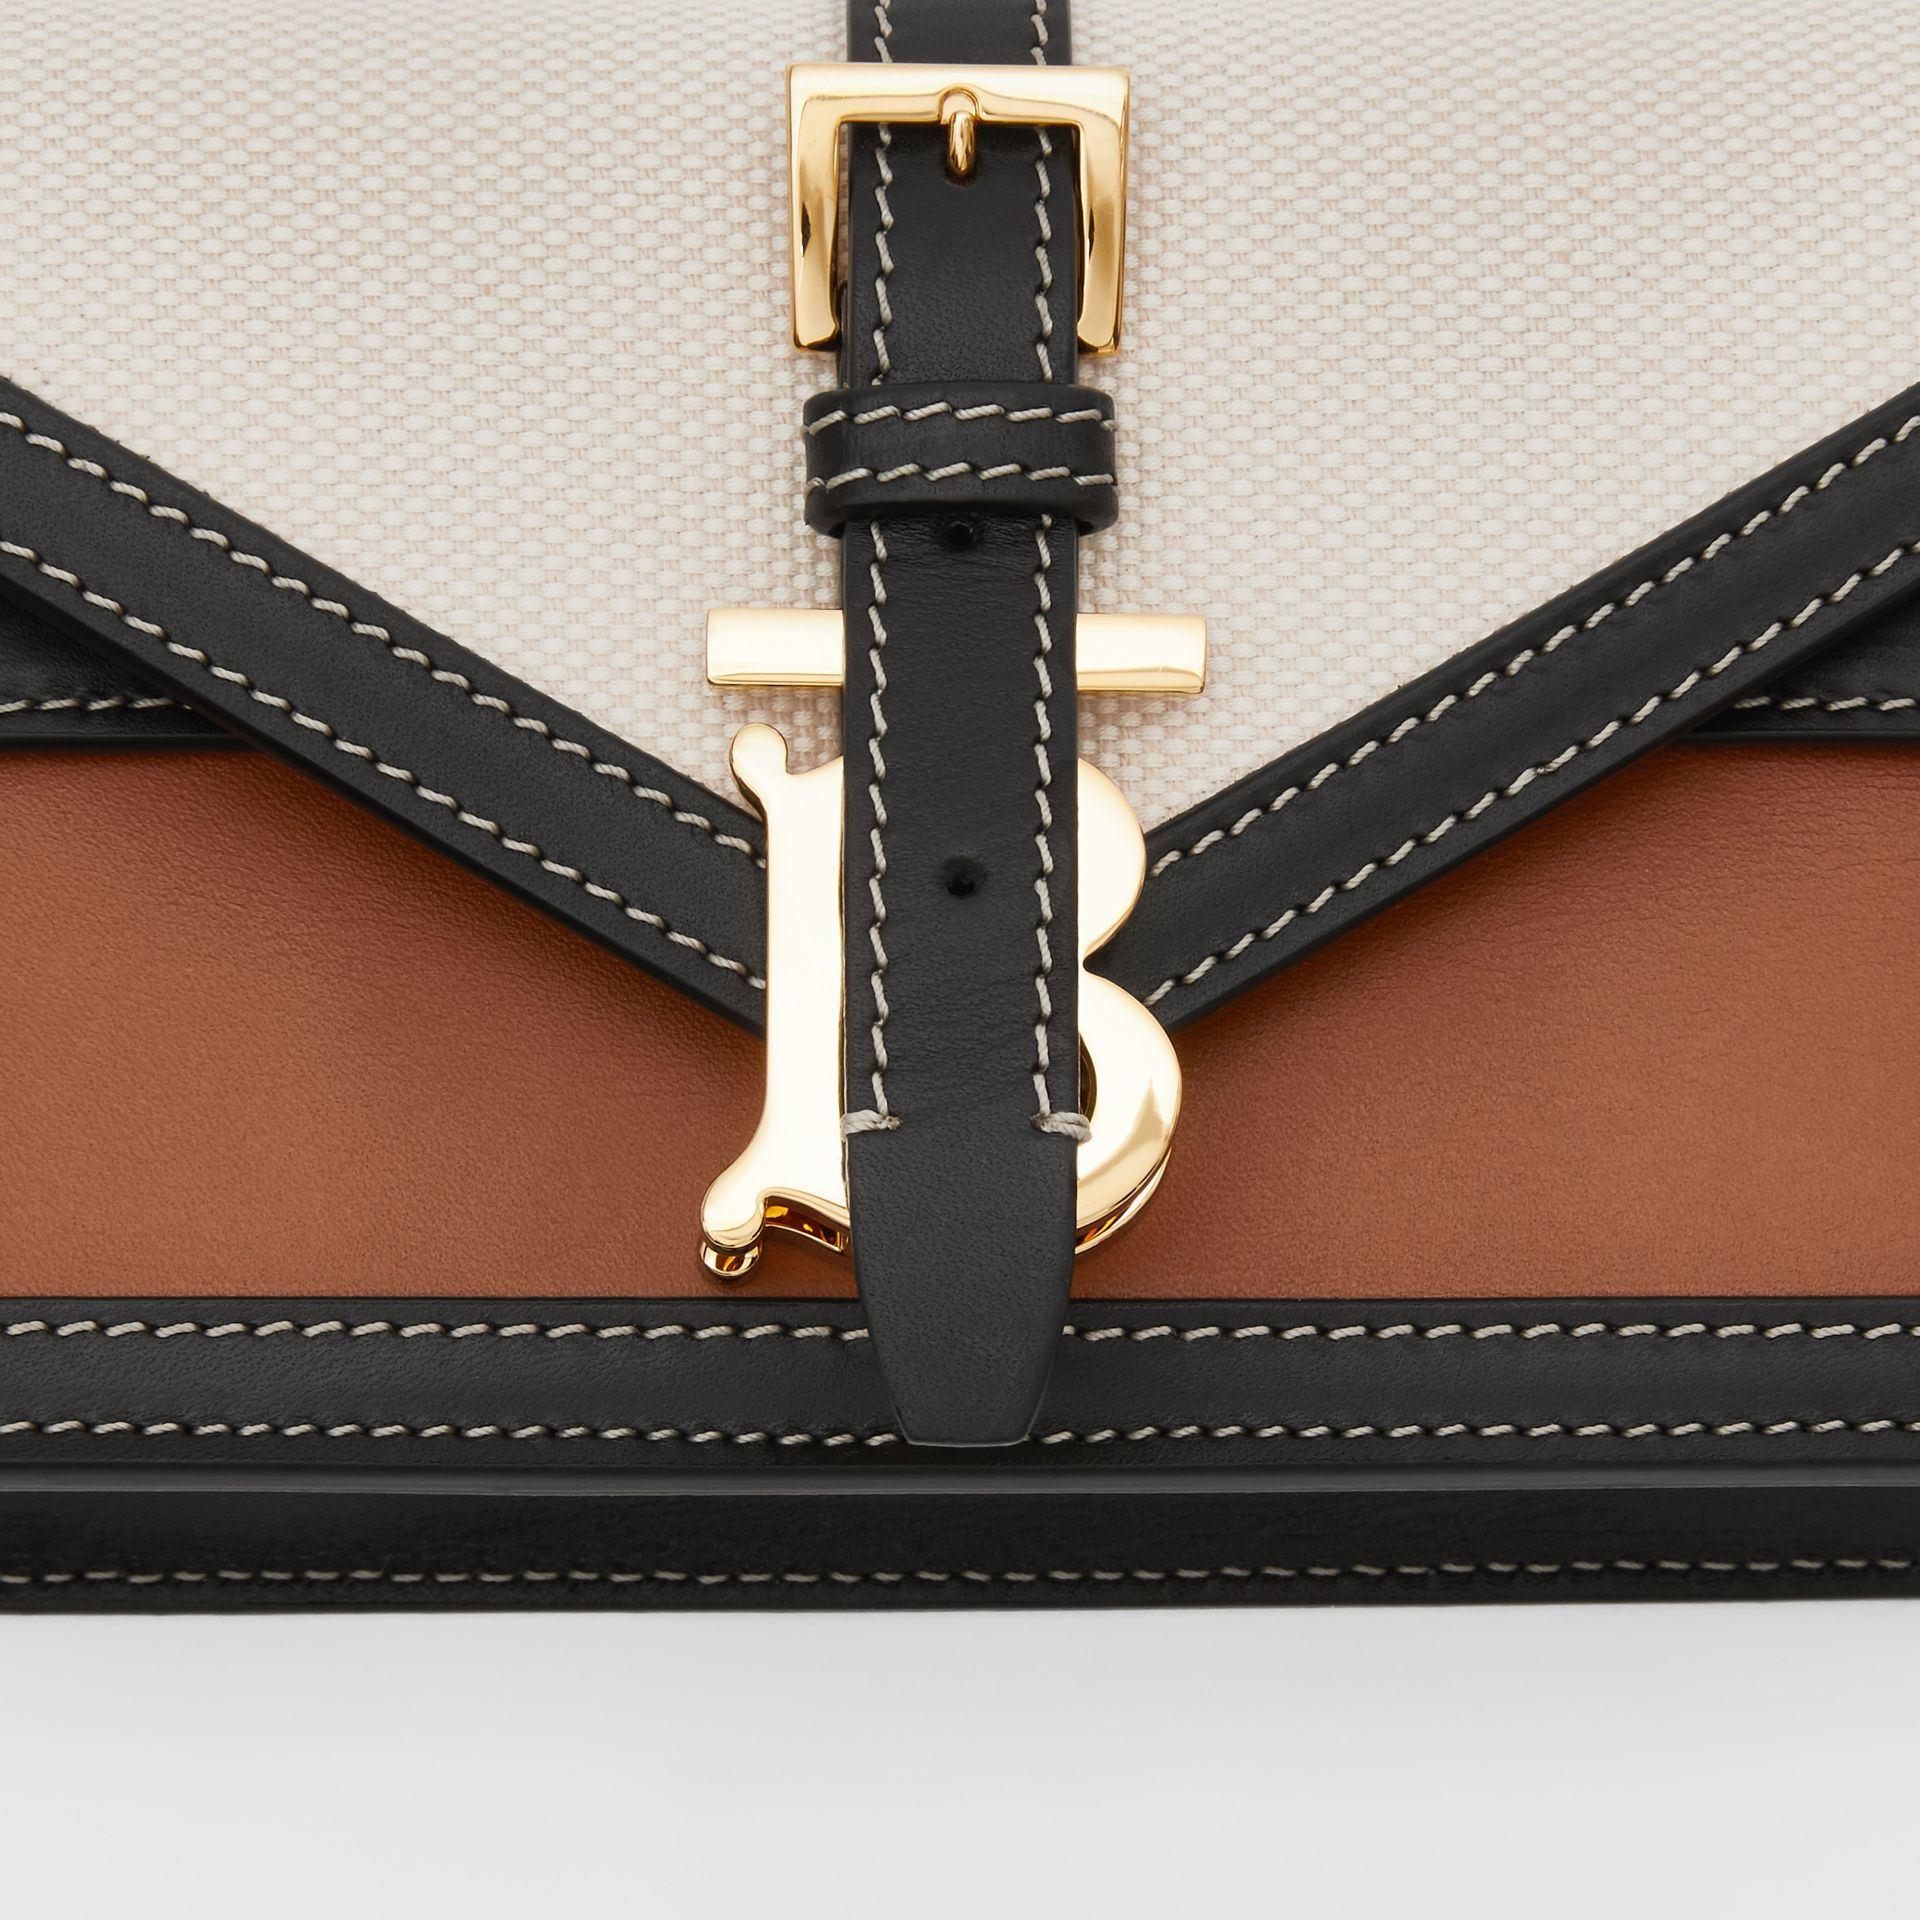 Mini Canvas and Leather TB Envelope Clutch in Tan - Women | Burberry Canada - gallery image 1